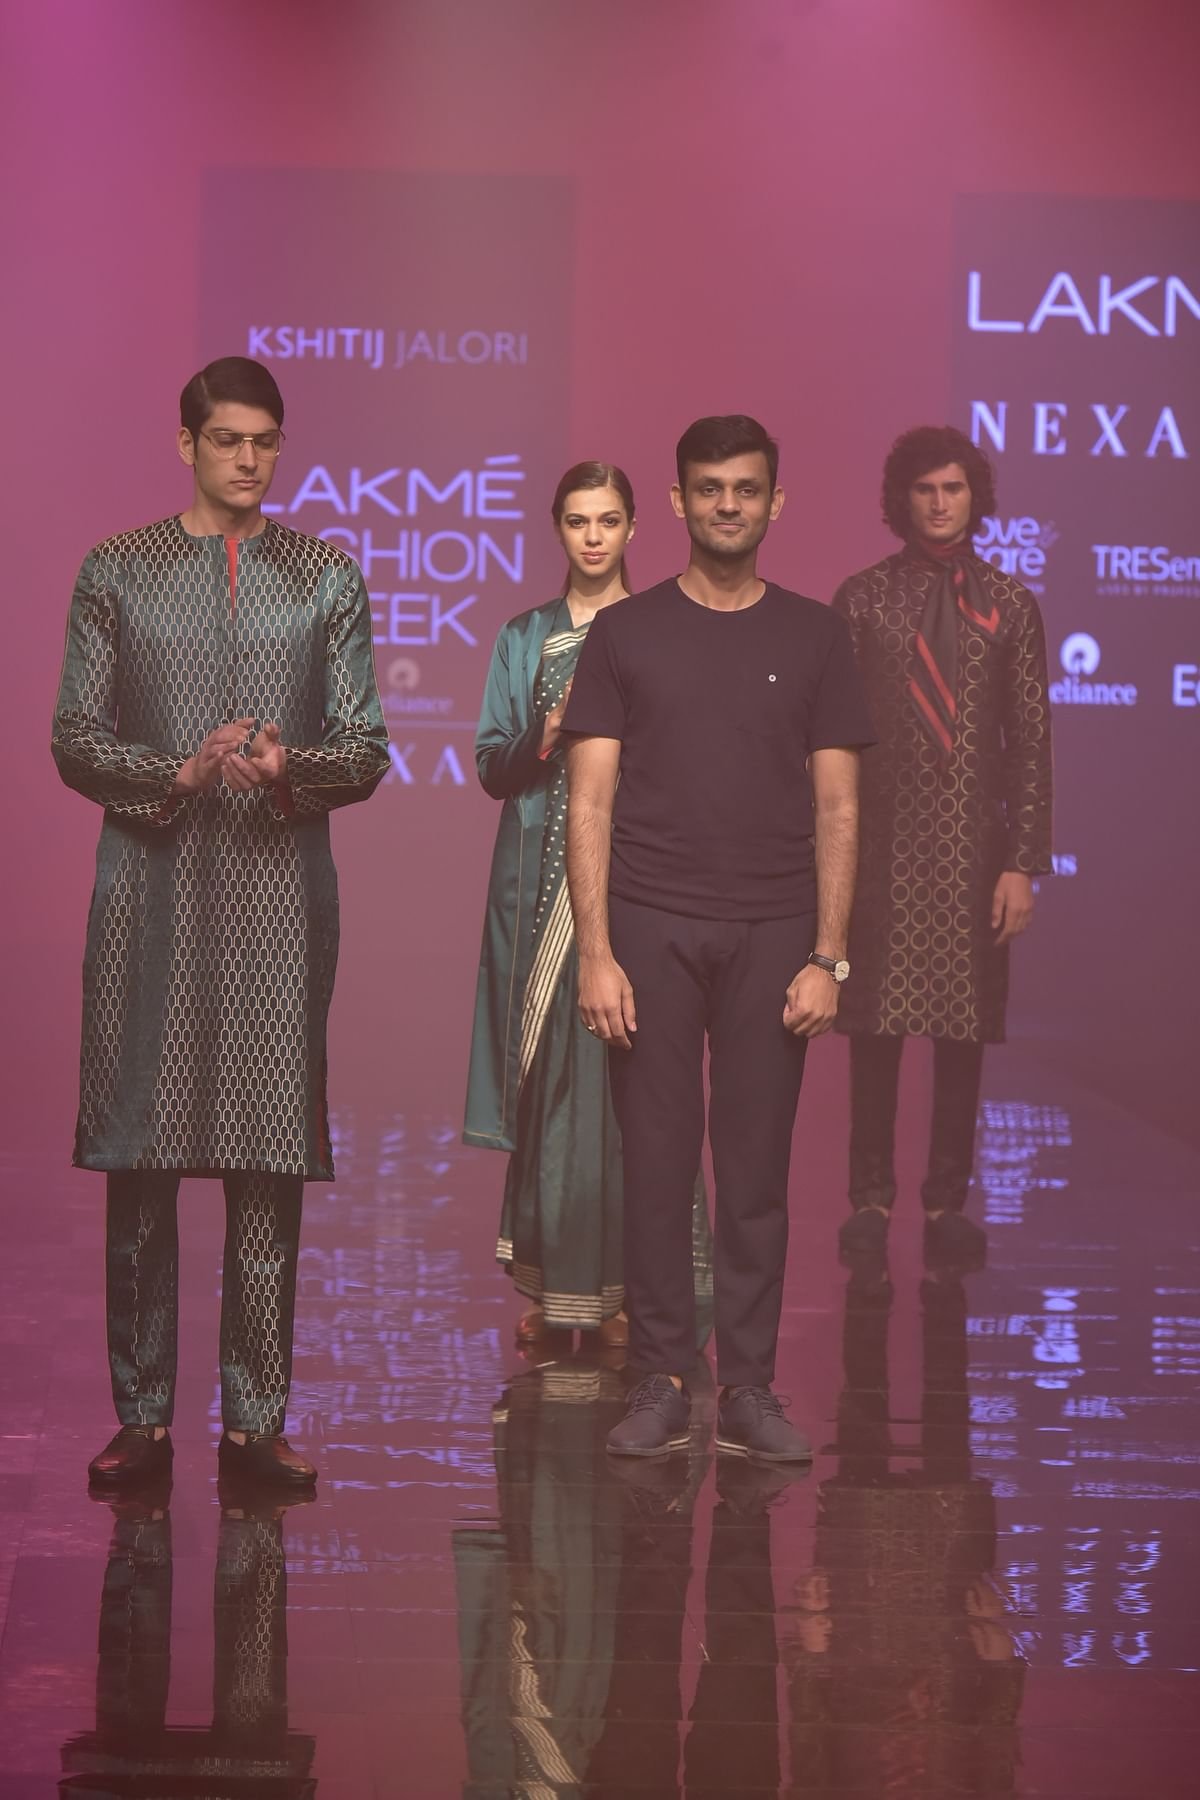 Kshitij Jalori presenting his collection with contemporary, free-flowing silhouettes.